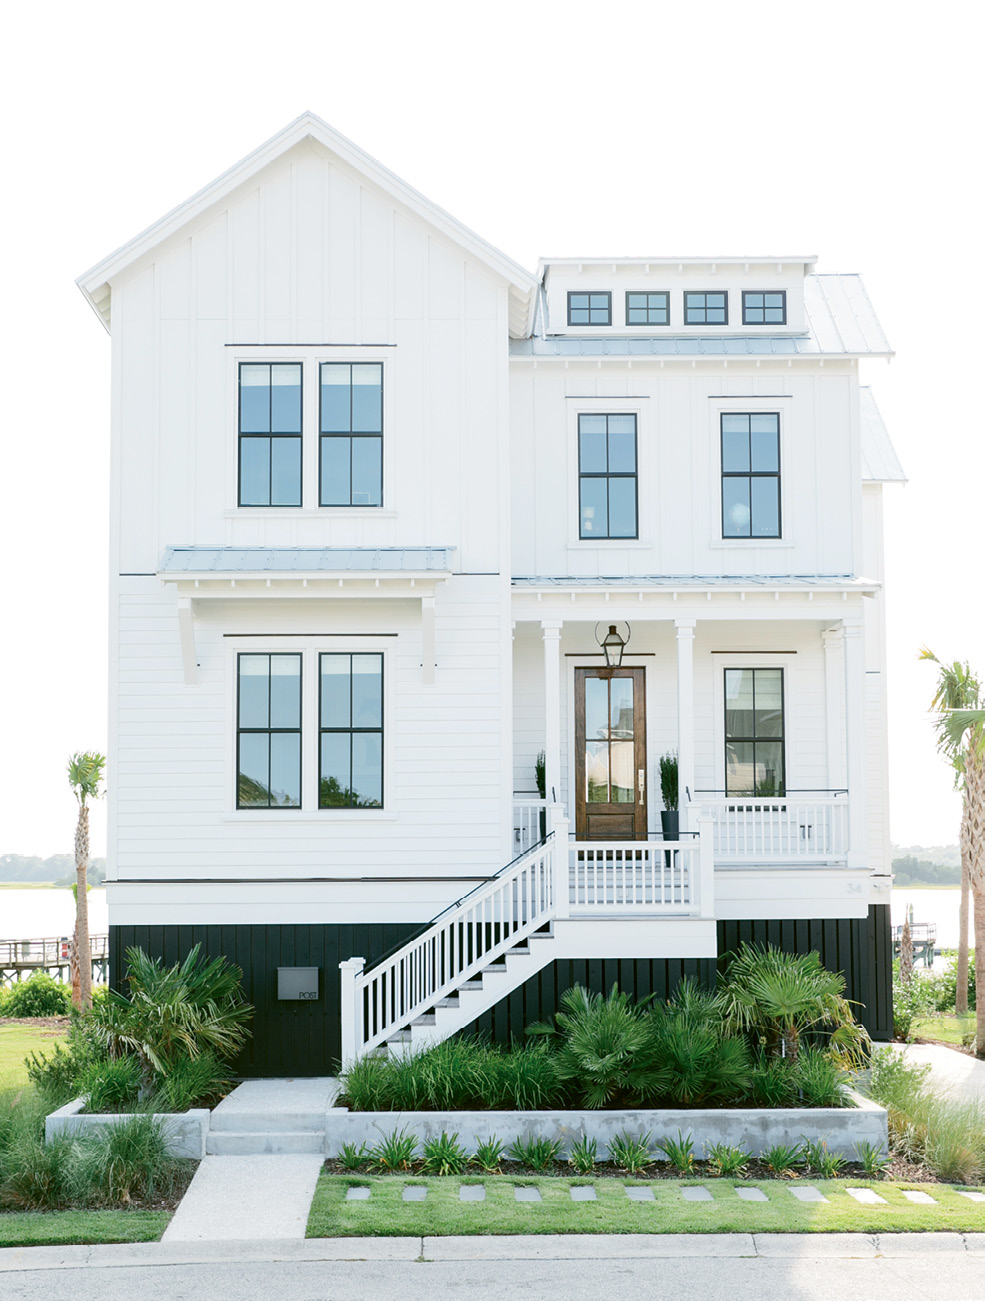 Clean lines and beachy materials make for a modern, coastal facade.